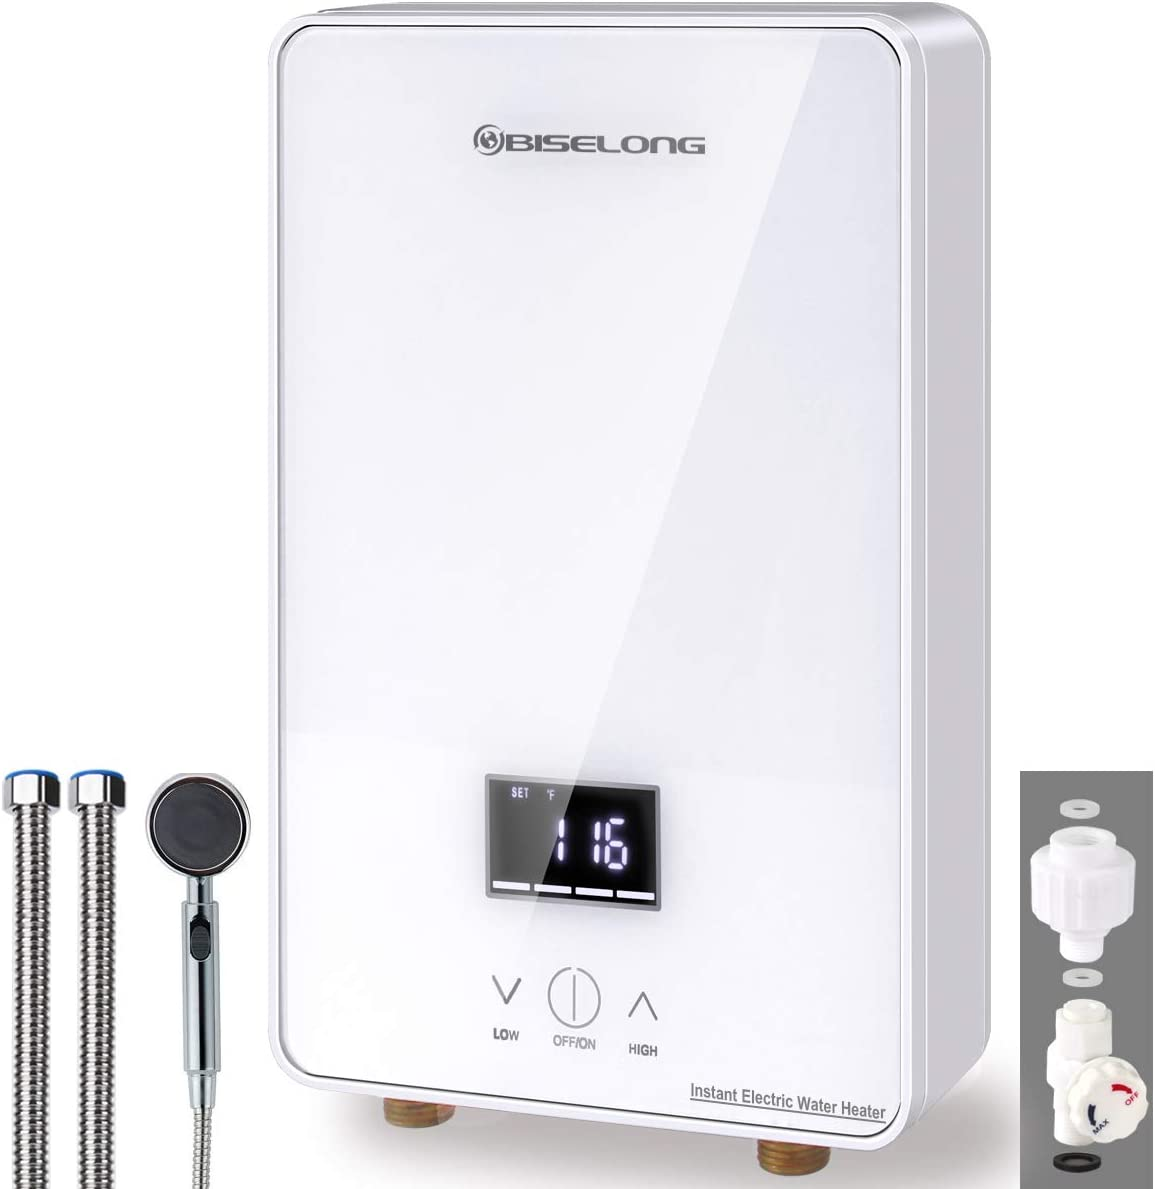 Tankless Water Heater Electric Hot Water Heater, Compact Size Point-of-Use Instant No Standby Losses, Digital Display, with Shower Head/Water Valve/Pipe 1.8GPM 6.5 KW, 220~240V